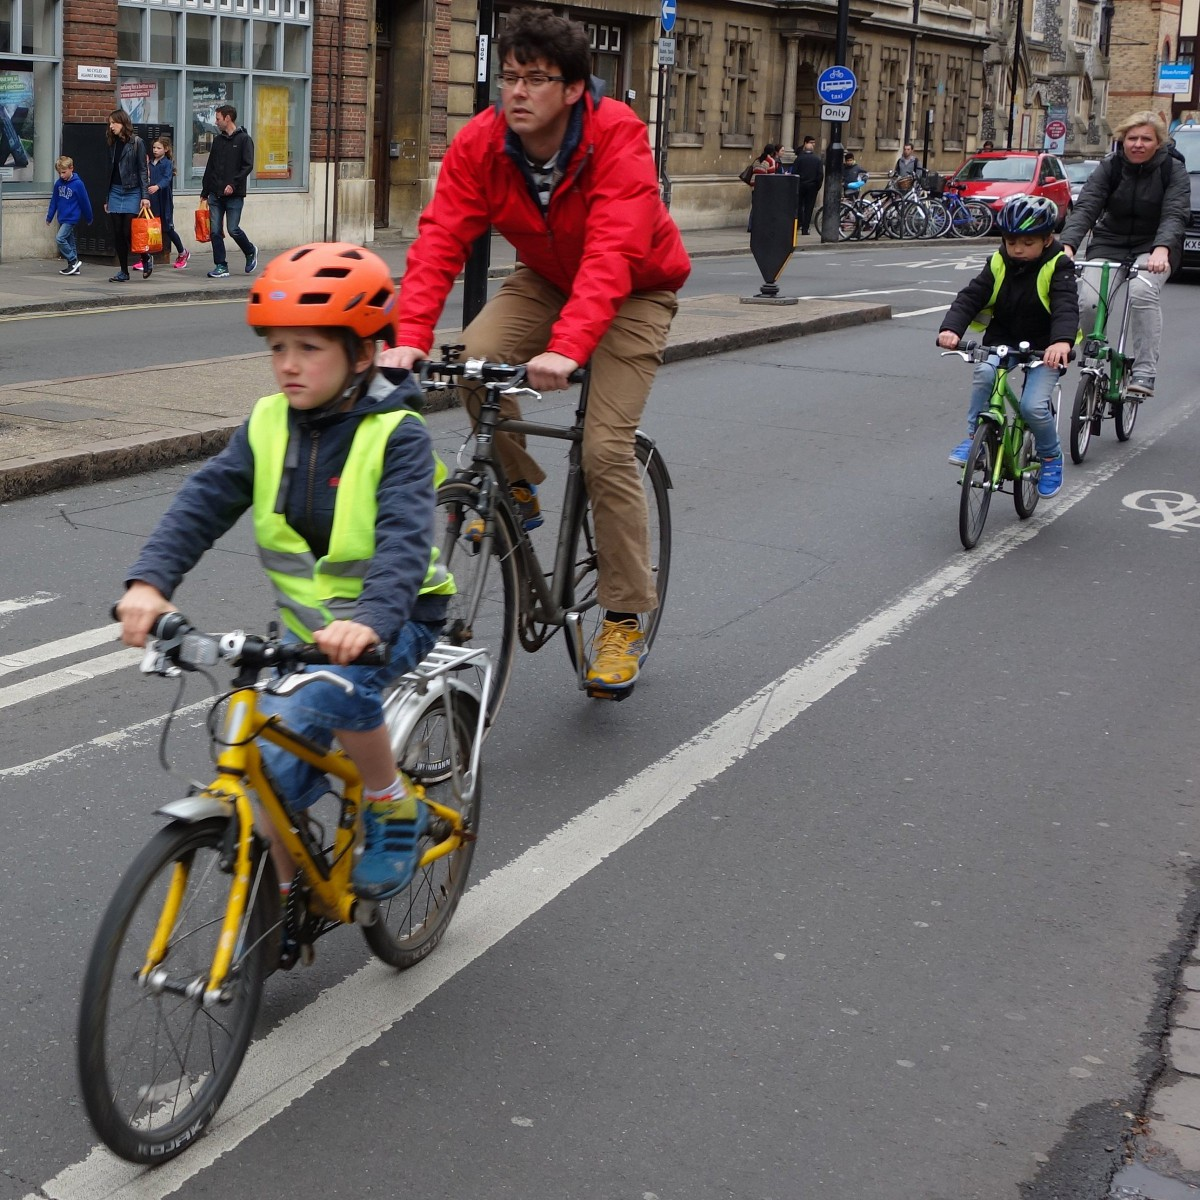 More and more children get a small helmet. A remarkable social trend that has been visible in many foreign cities such as here in Cambridge (England). The helmet is an expression of a predominantly technical and individually oriented focus on safe cycling. Apparently it can always be safer.  Photo: Rob van der Bijl, Cambridge, UK, May 1, 2017